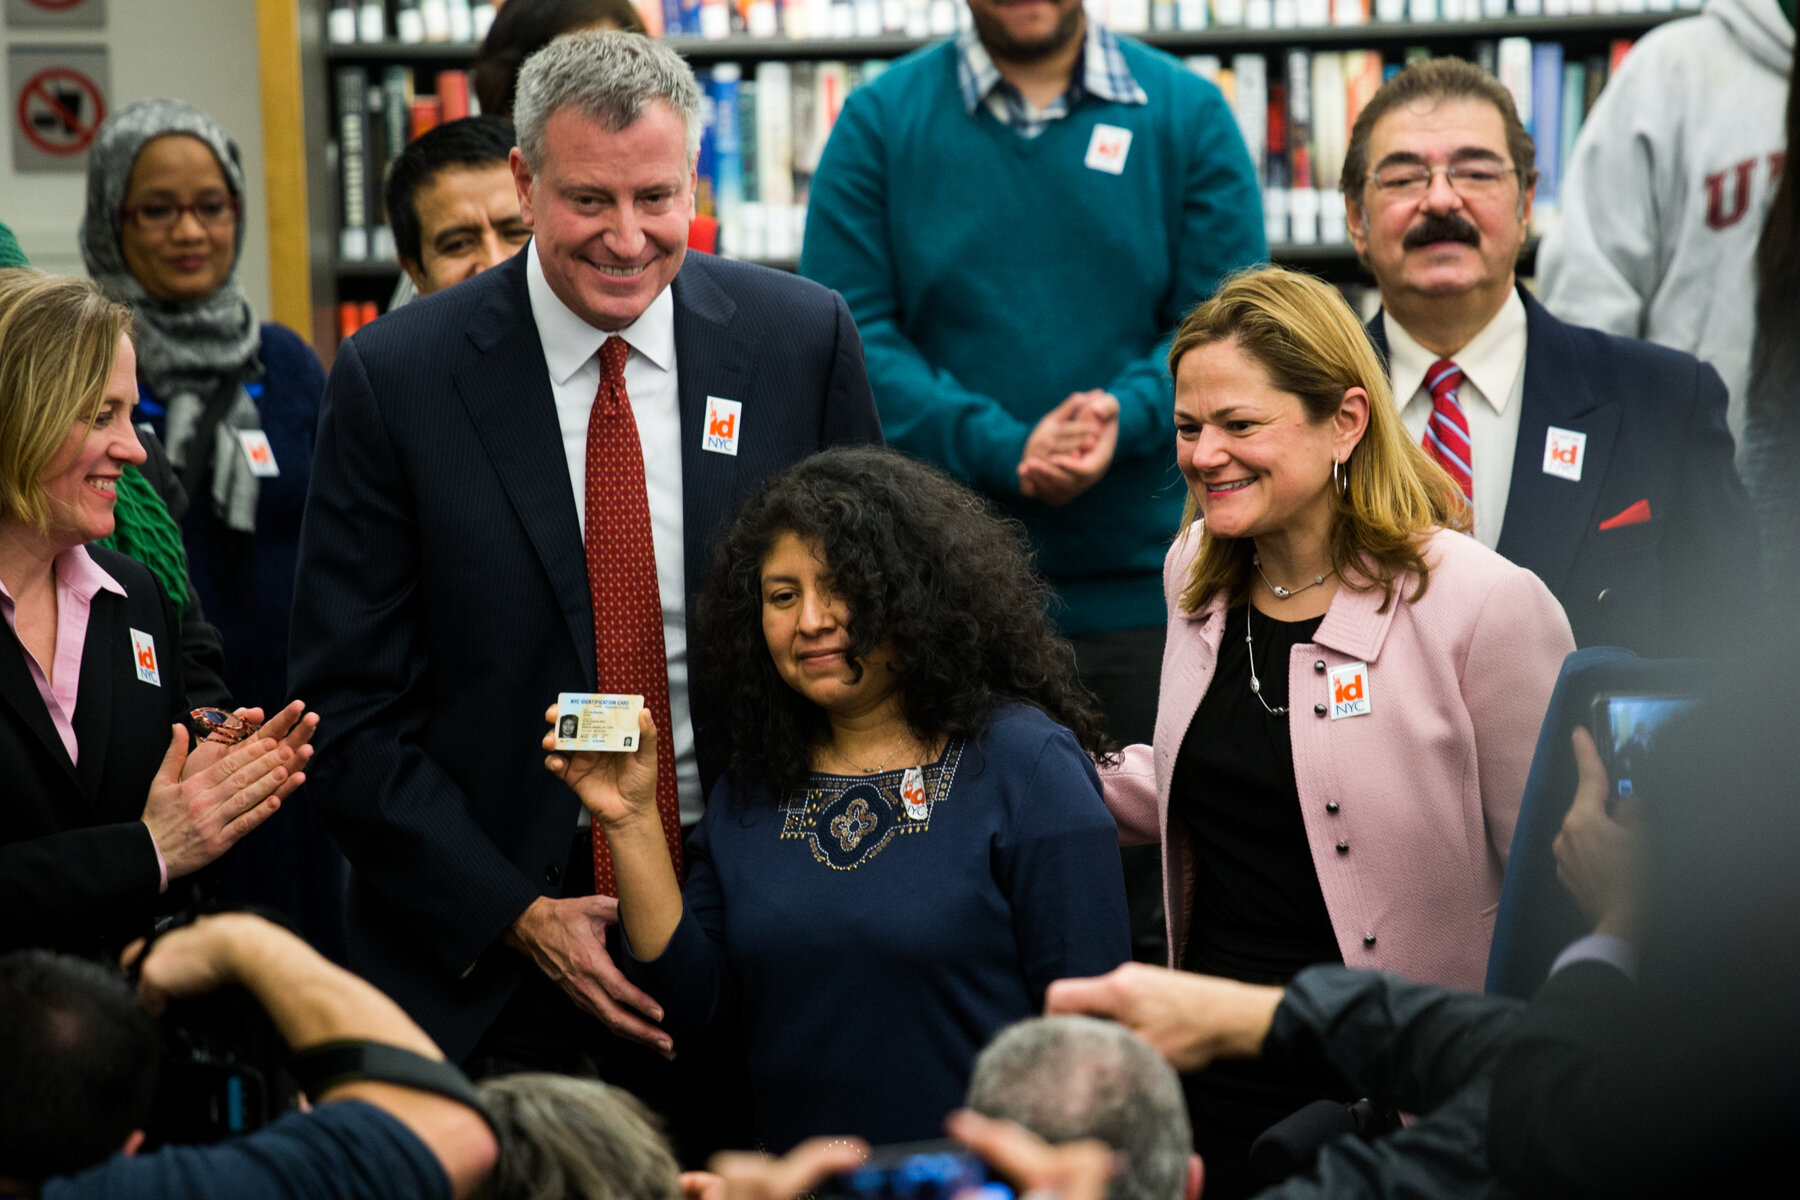 Mayor Bill de Blasio and city leaders introduced the the IDNYC card in 2013. Photo by William Alatriste via City Council/Flickr.